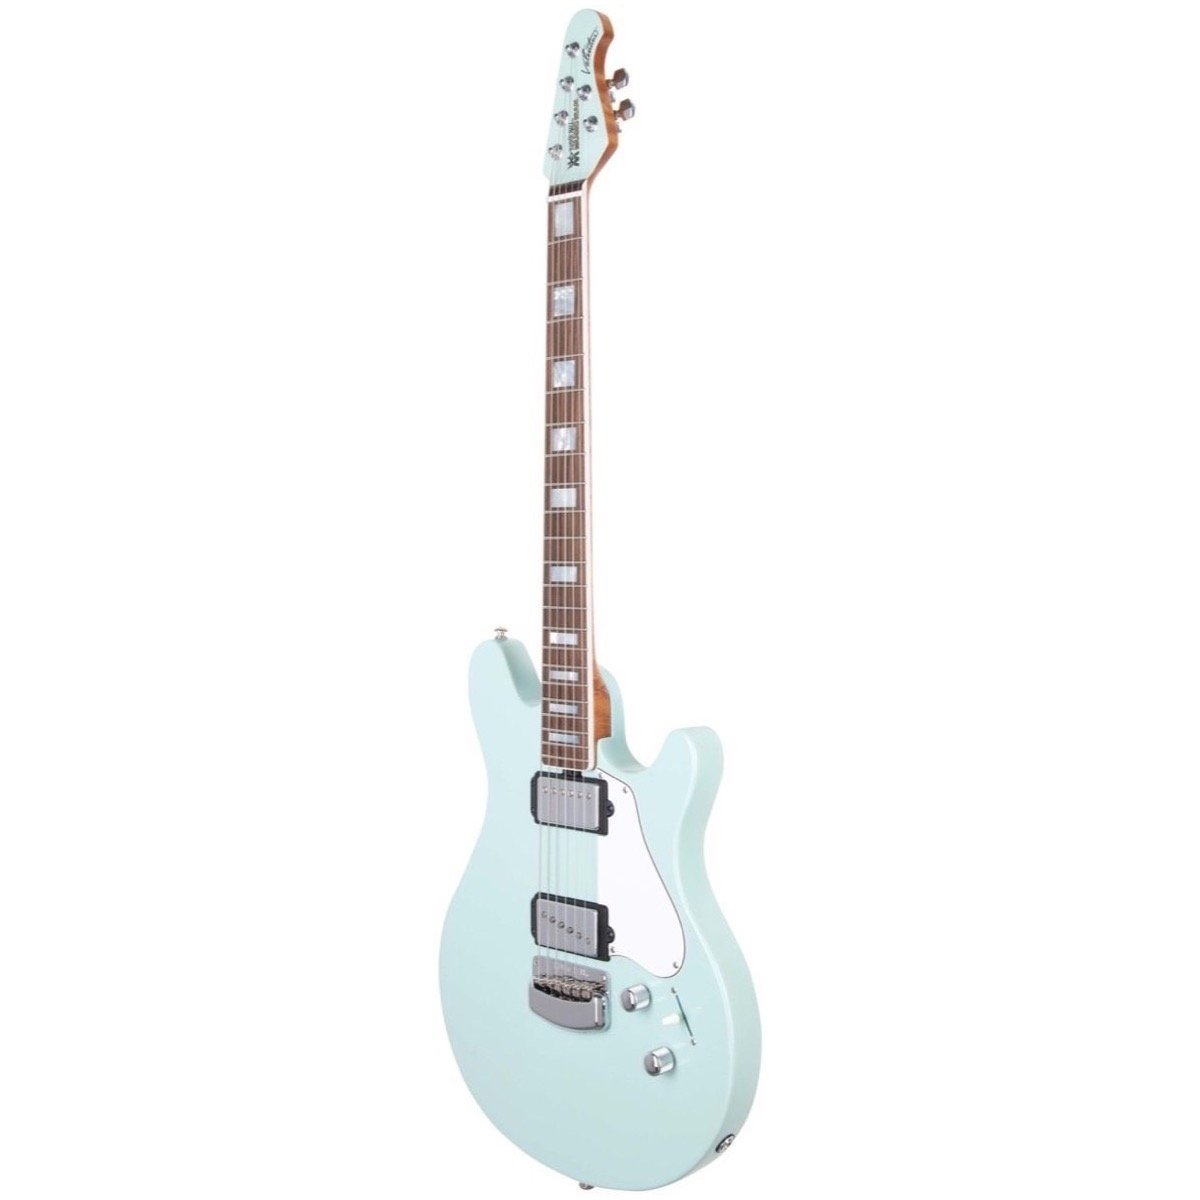 Ernie Ball Music Man BFR Valentine Signature Electric Guitar (with Case), Baby Blue